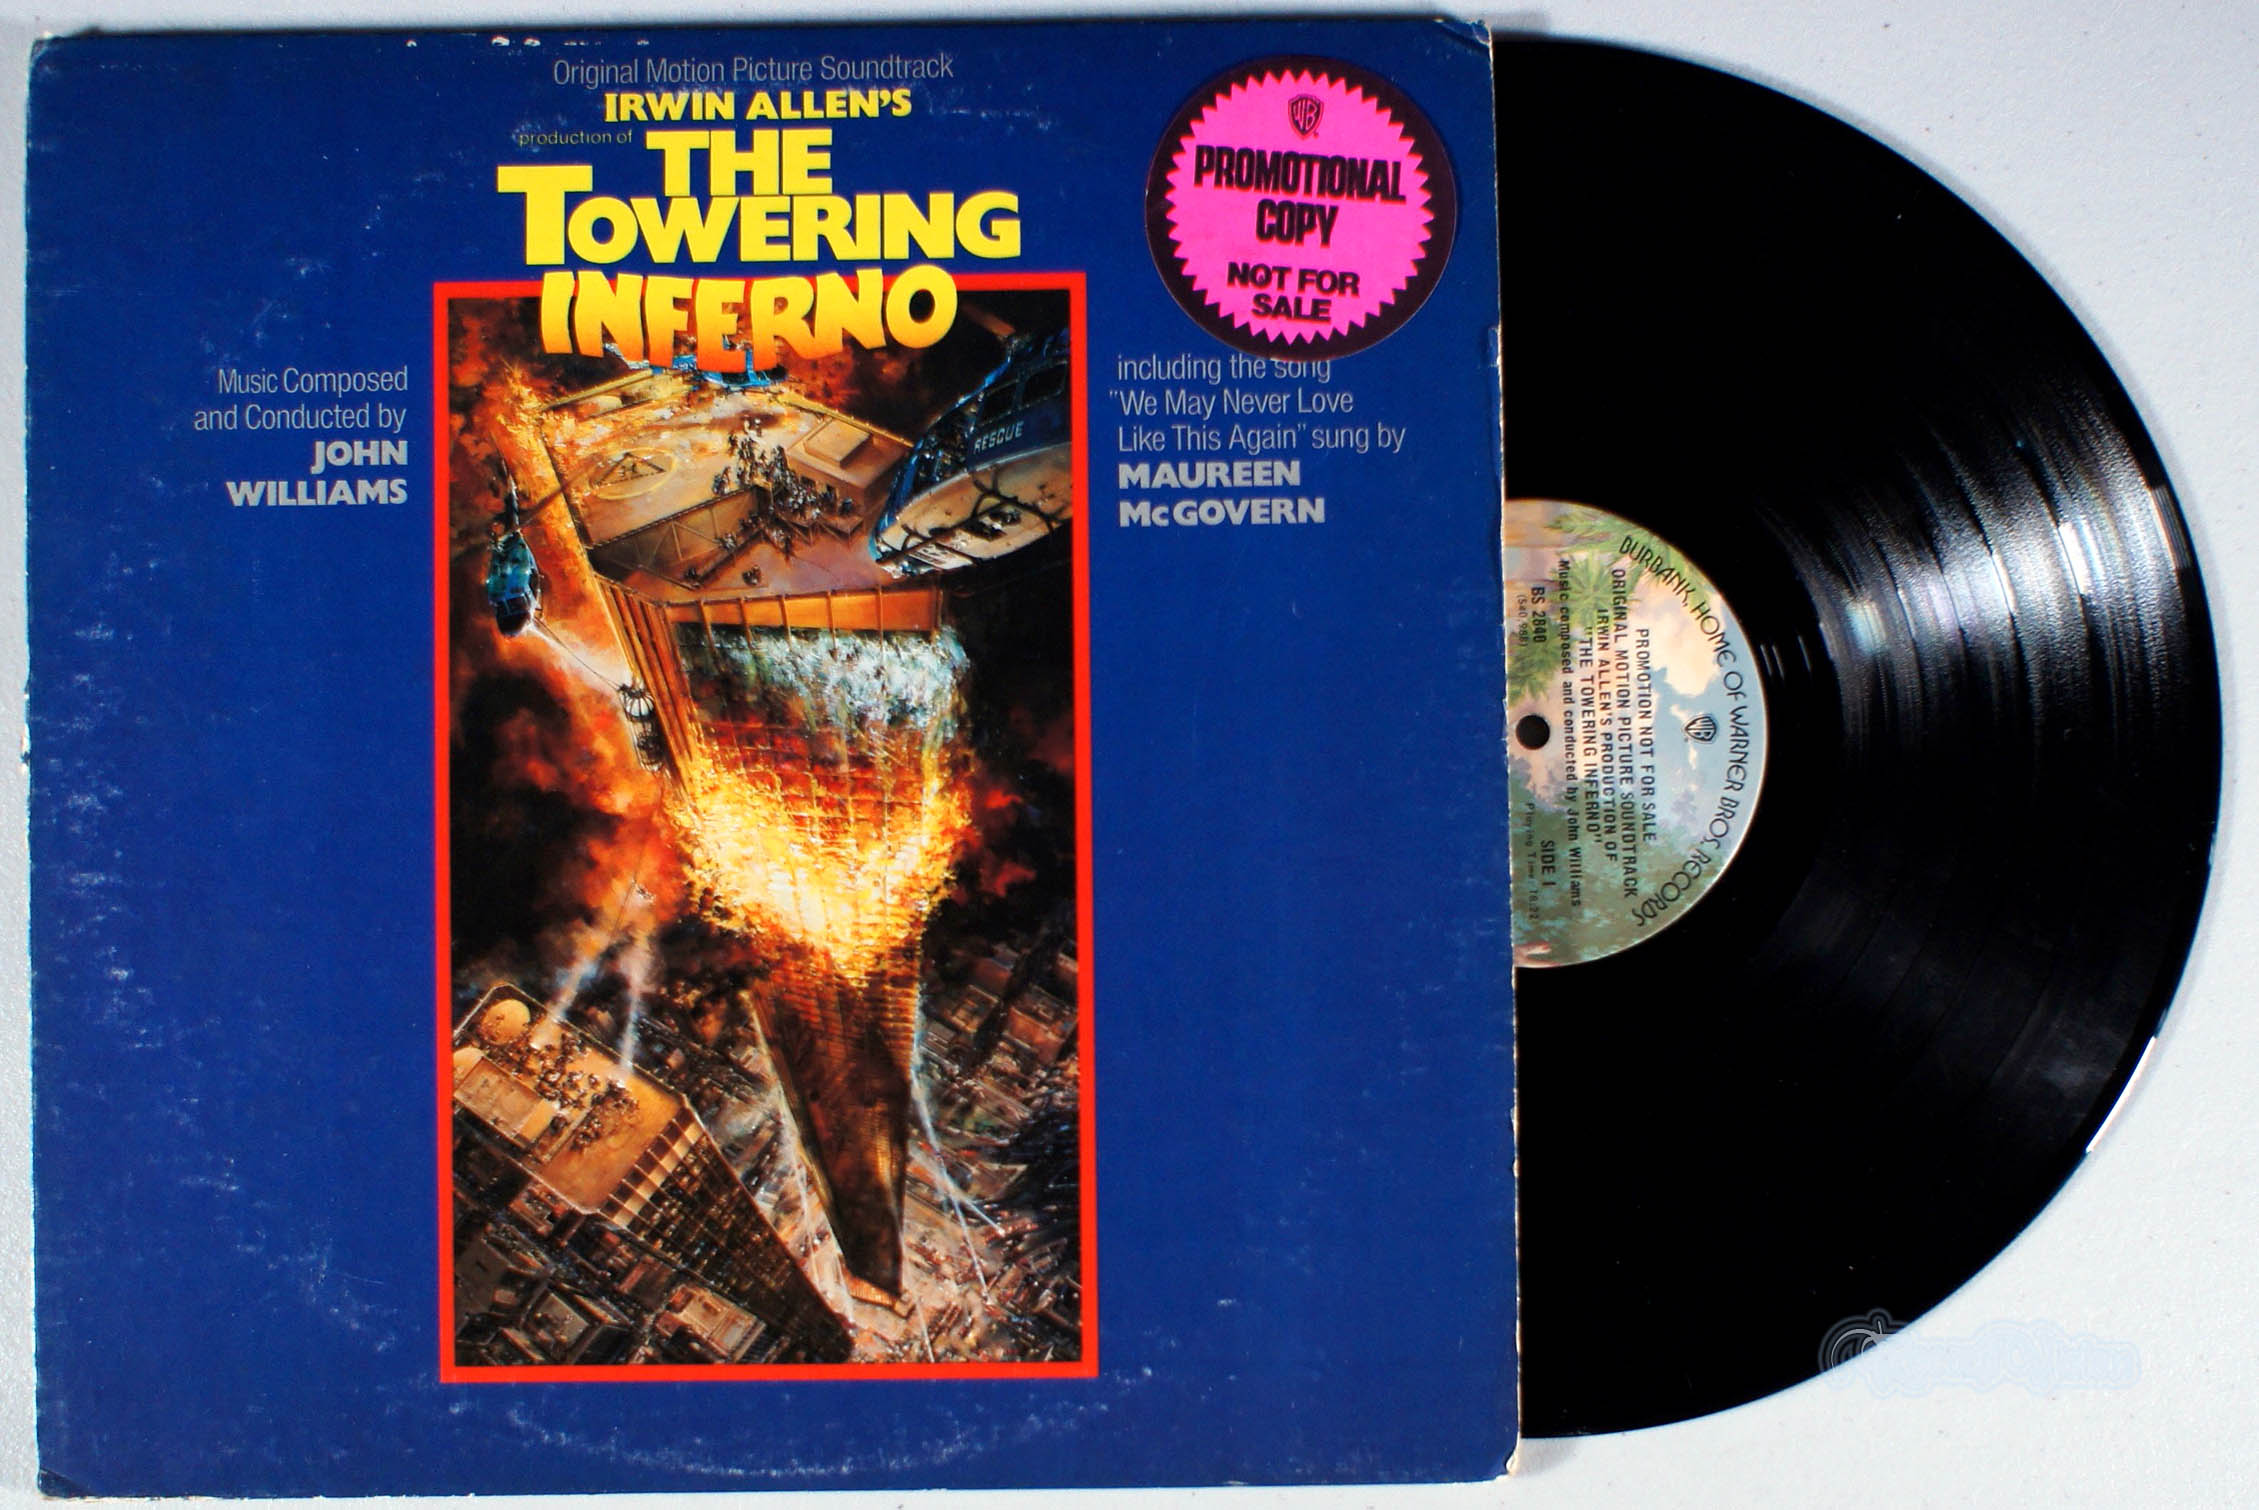 JOHN WILLIAMS - The Towering Inferno - 33T